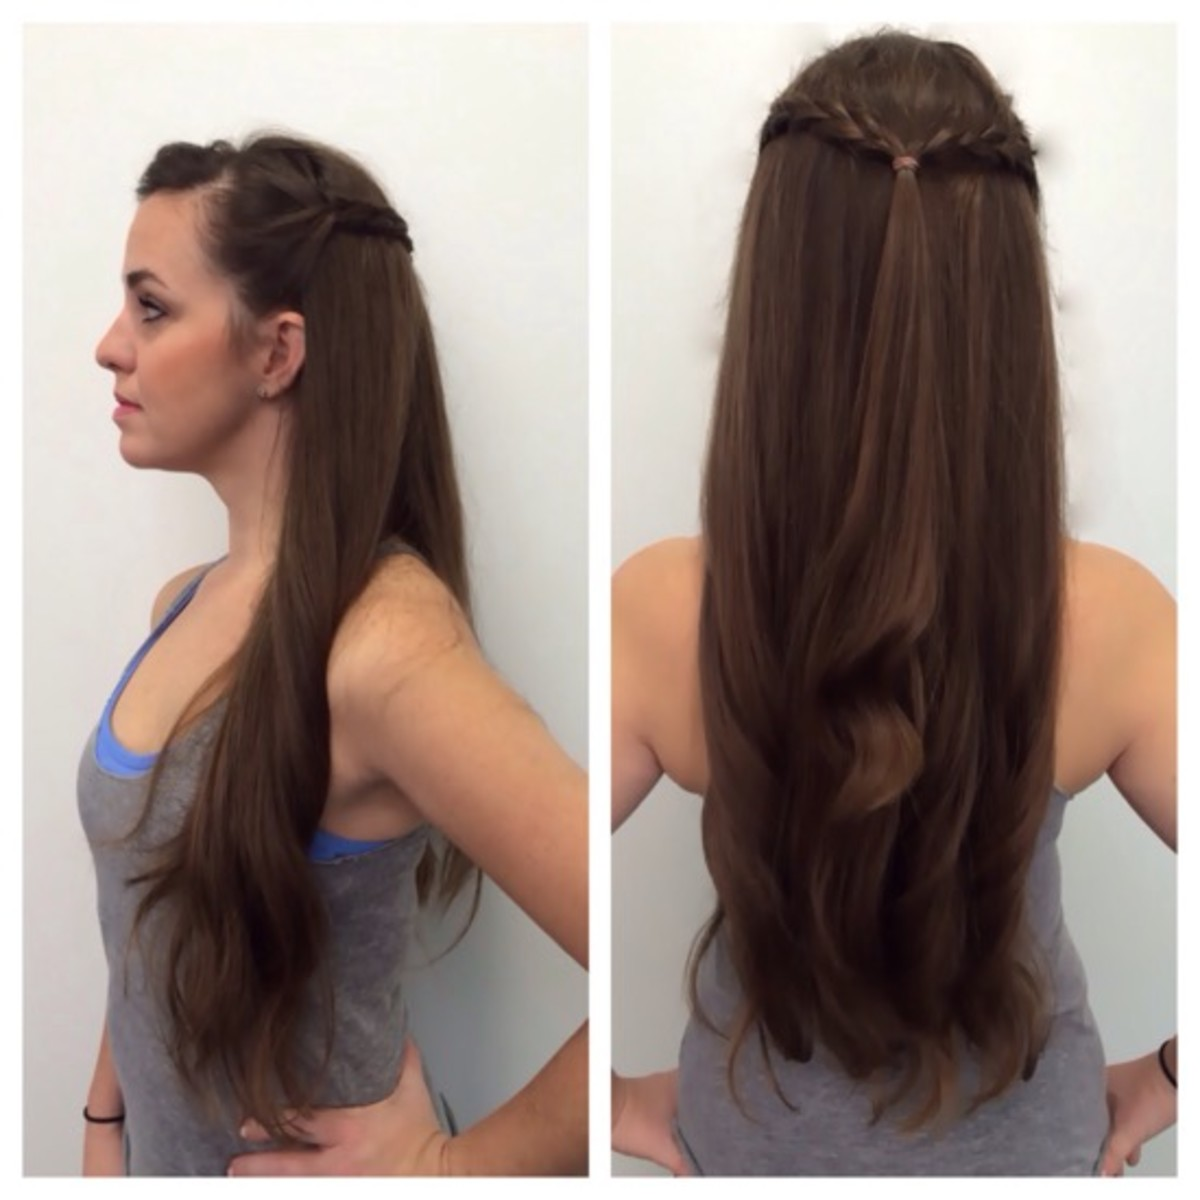 4 Cute Workout Updos For Long Hair: Evict That Ponytail